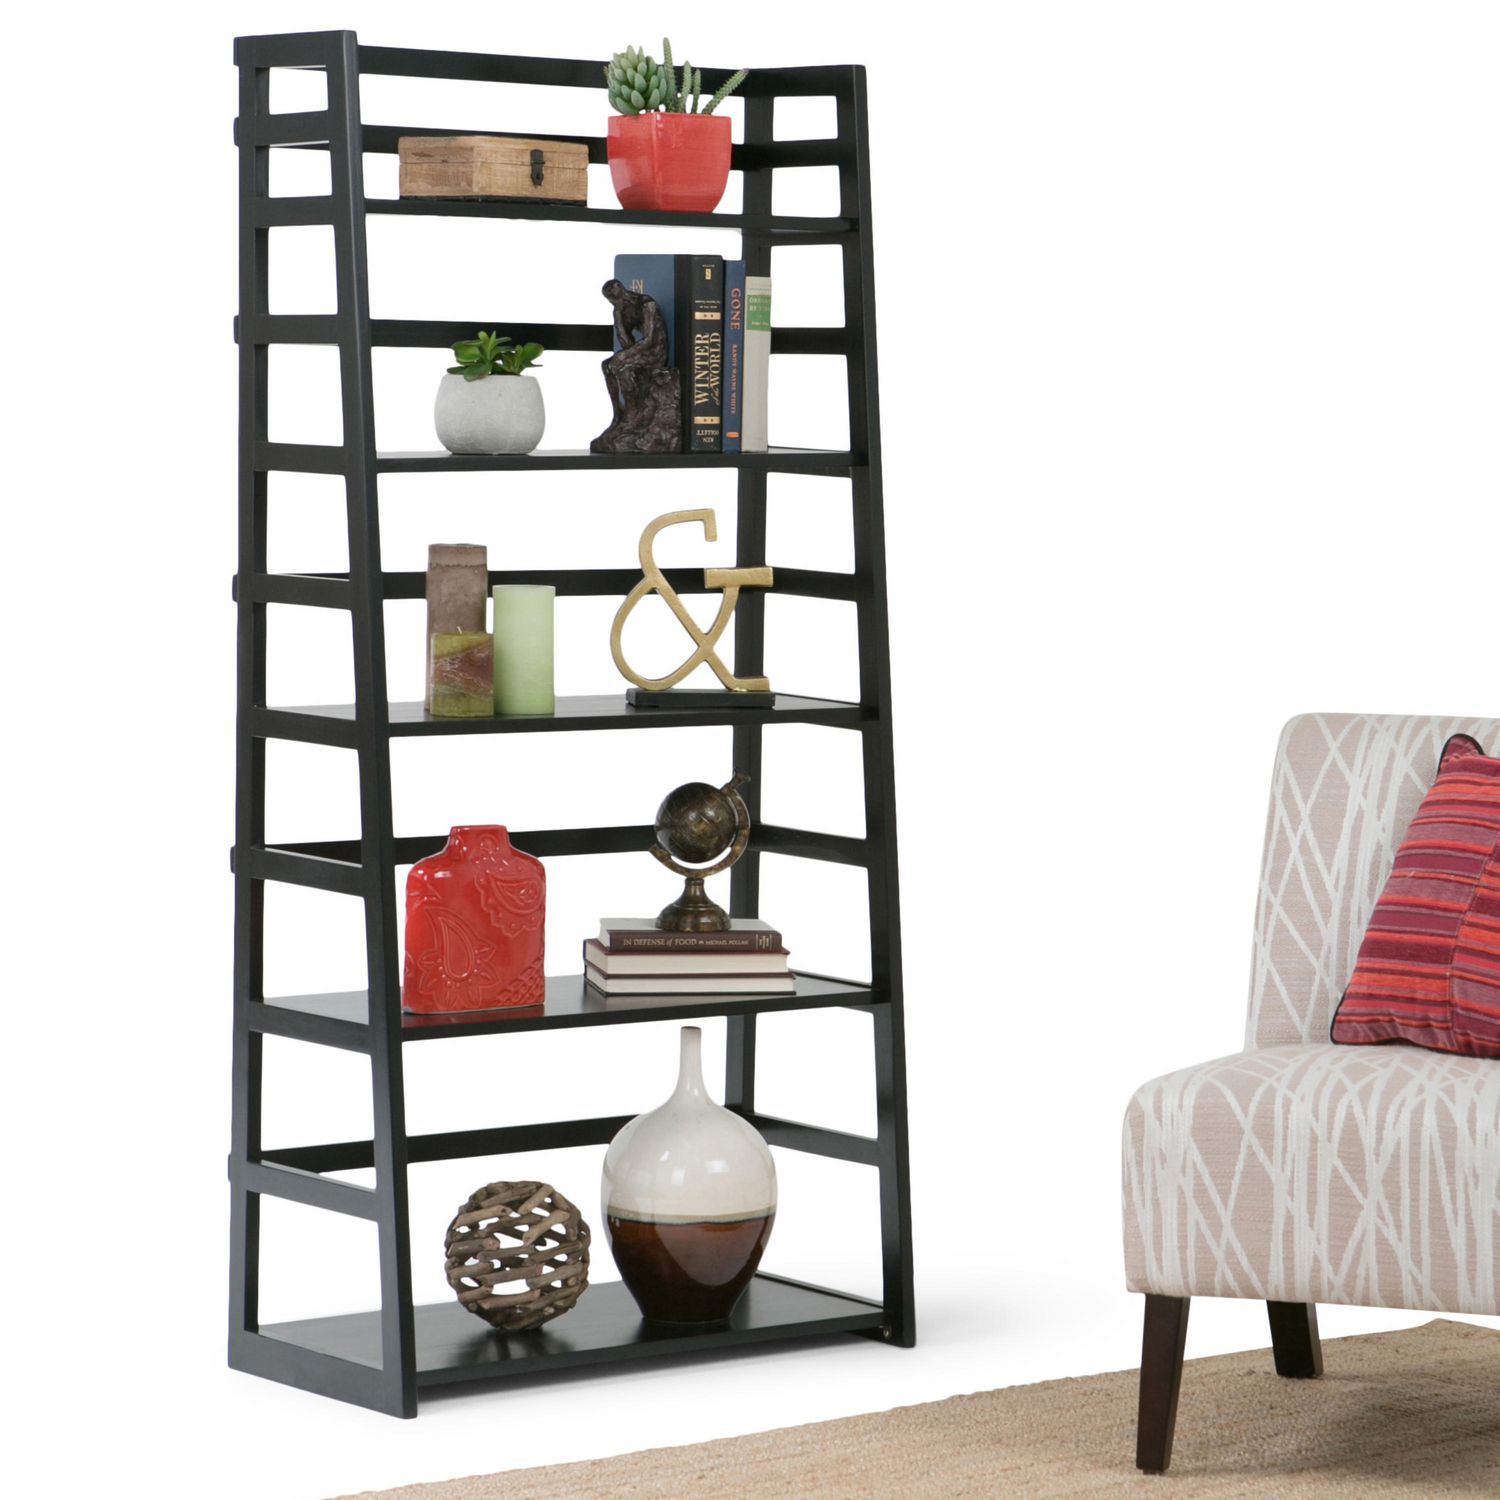 at home amiphi best leaning bookcase hayneedle s about ladder shelf espresso bookcases info toddlers sawhorse remodel for